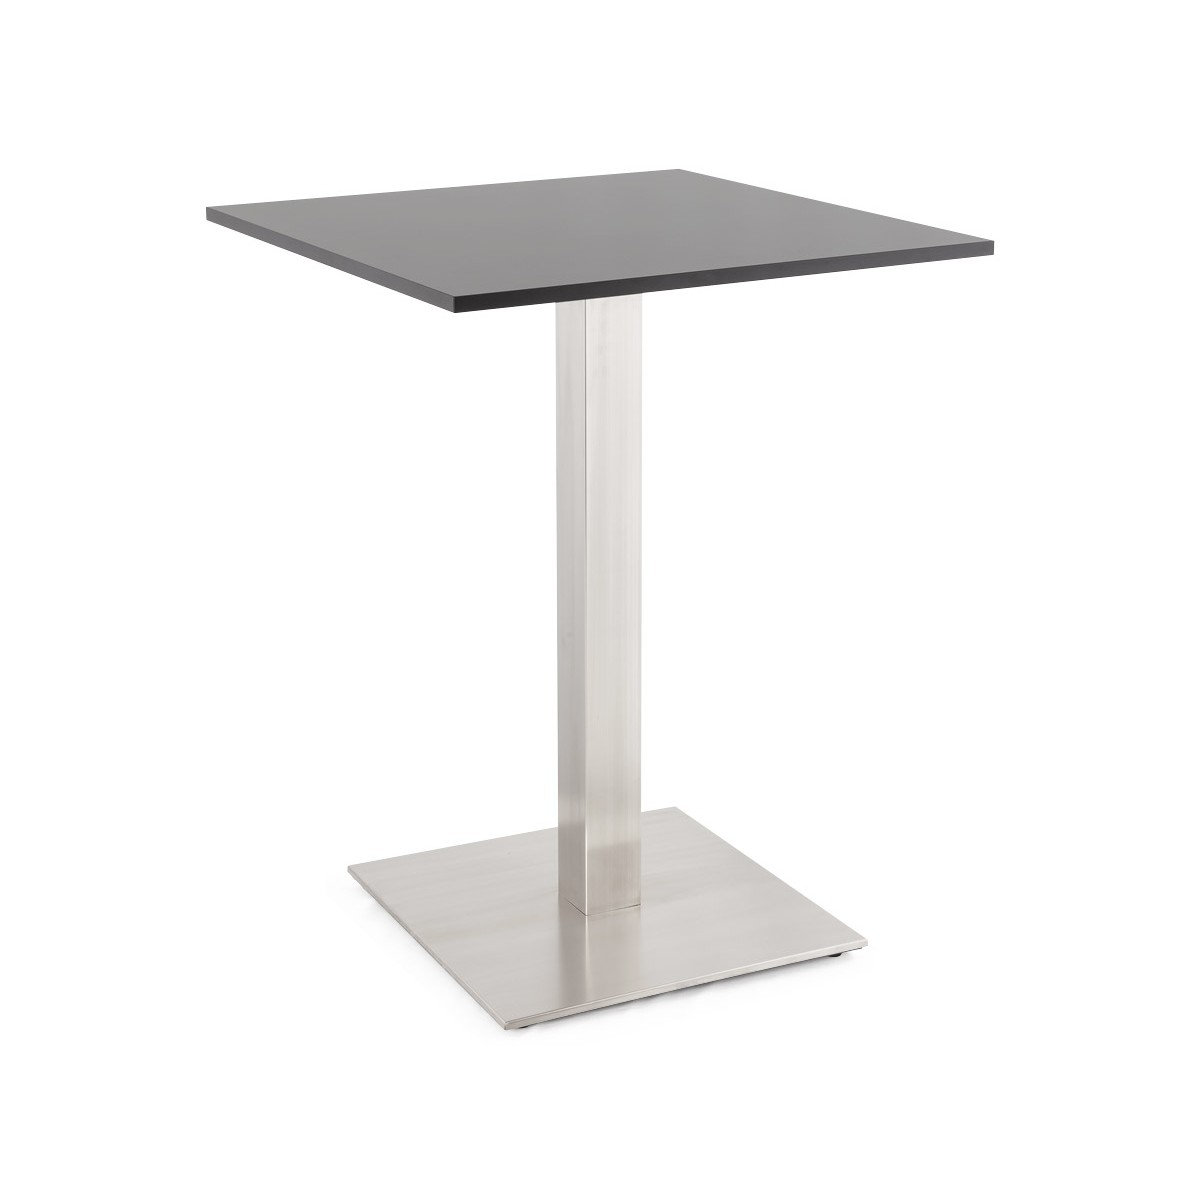 Pied de table pary carr en m tal acier fran ais french - Pieds de table en metal ...